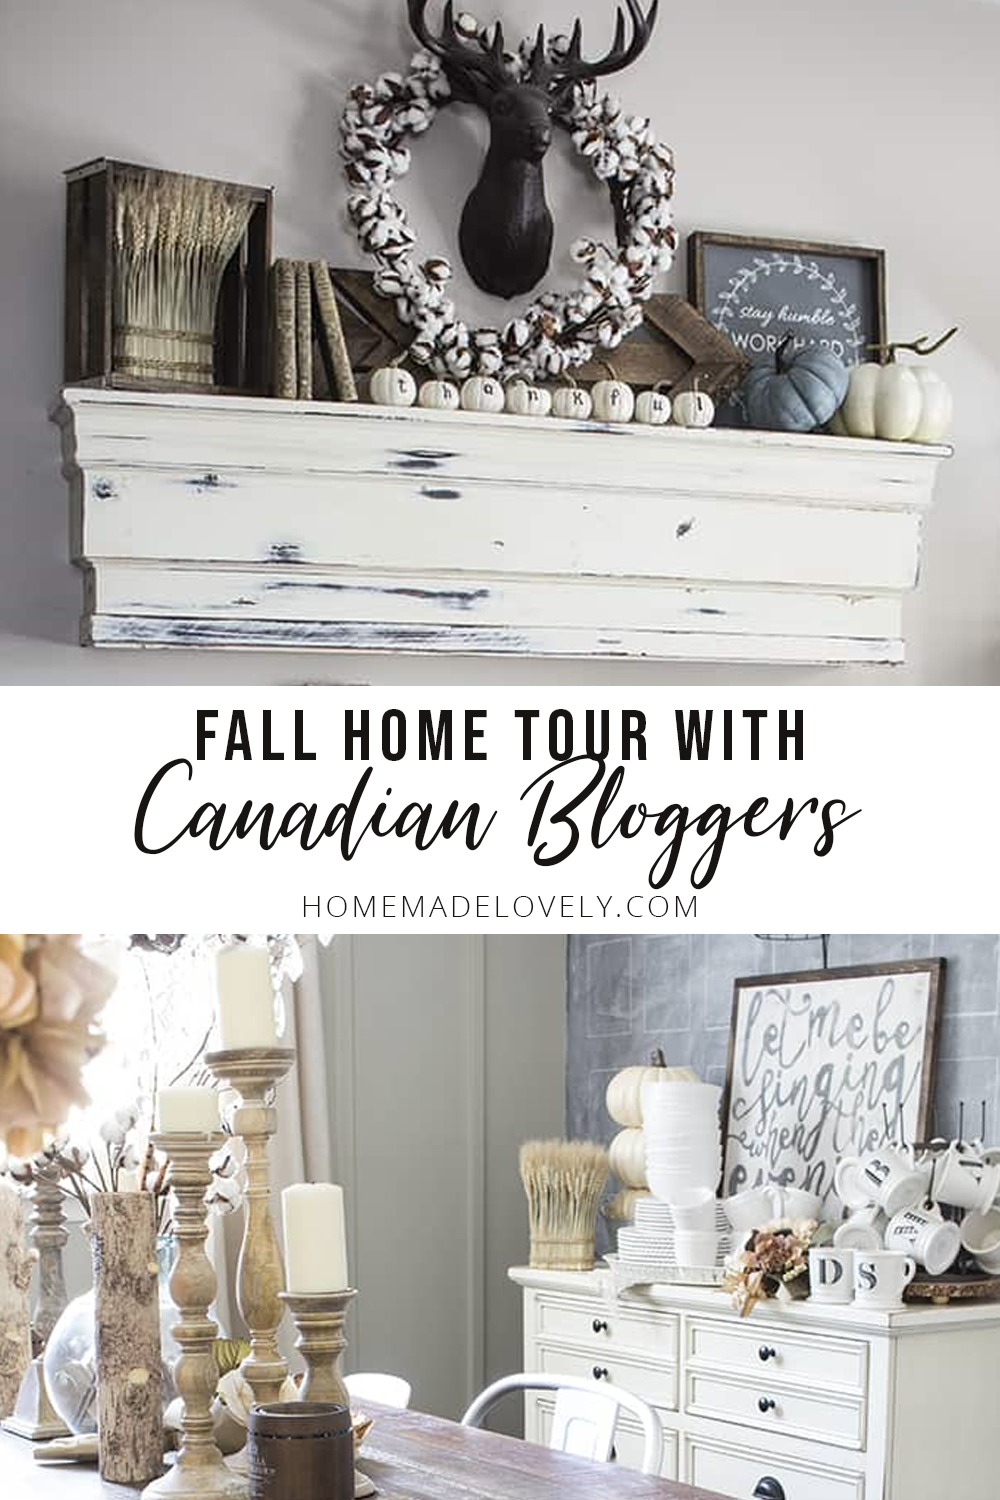 Fall Home Tour with all Canadian Bloggers!